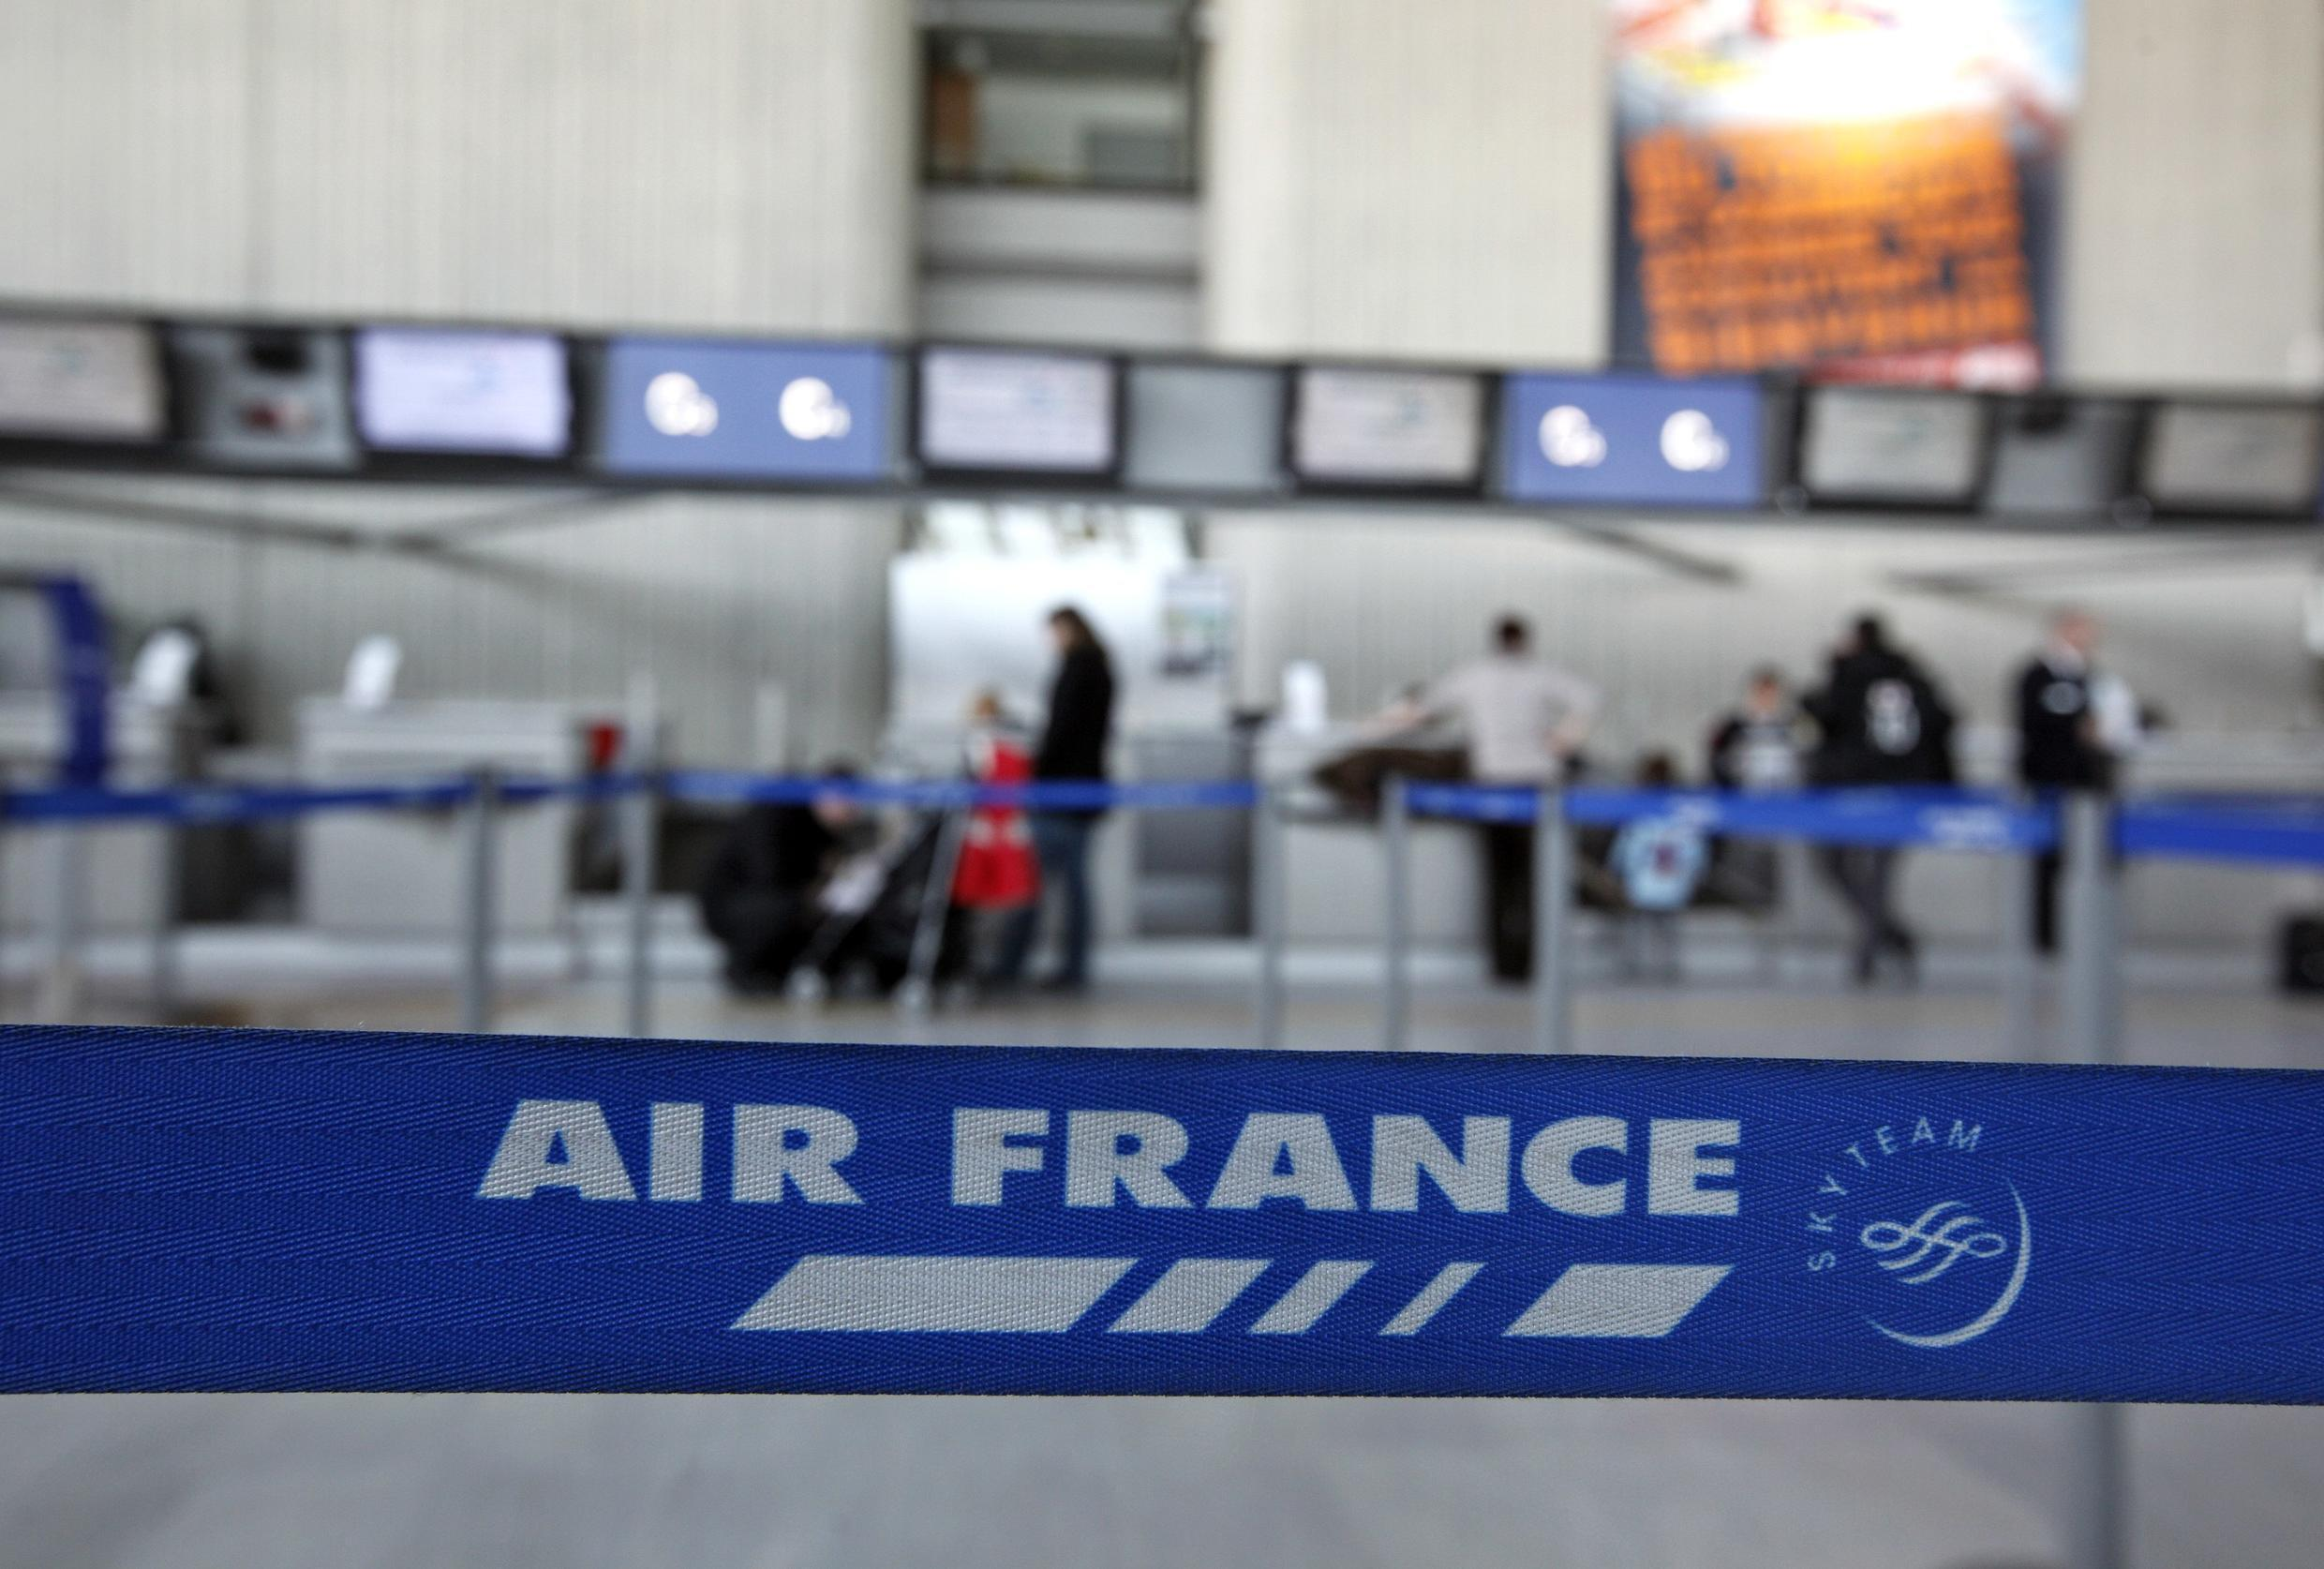 Air France has decided to cancel its Paris-Damascus flight